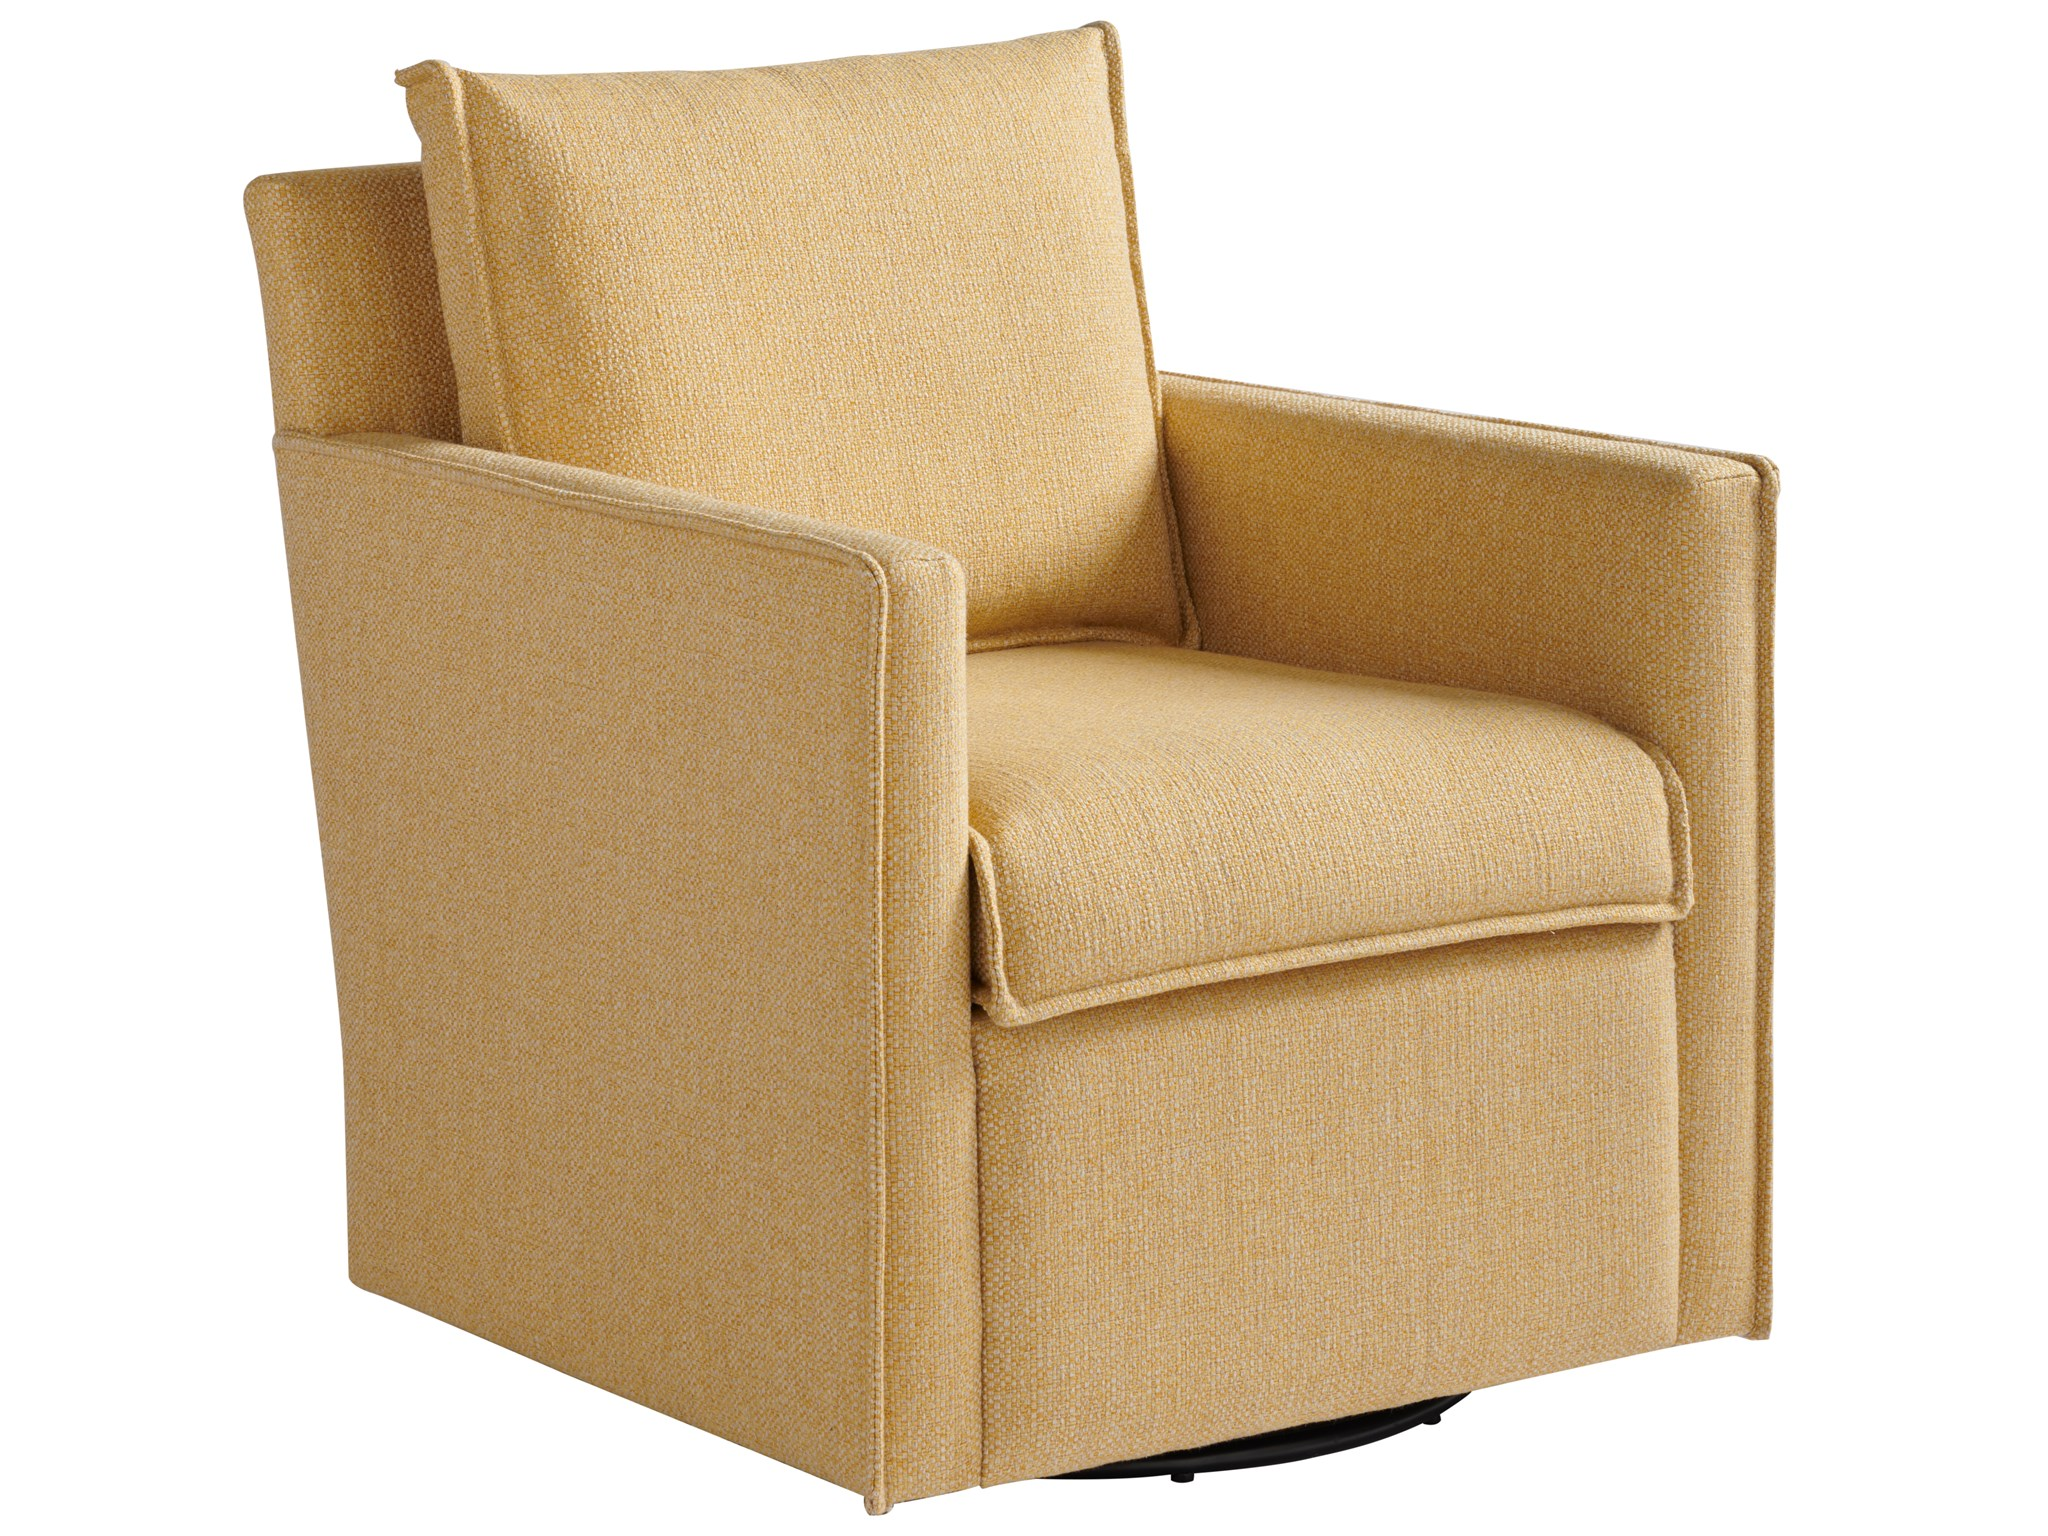 Barley Swivel Chair - Special Order